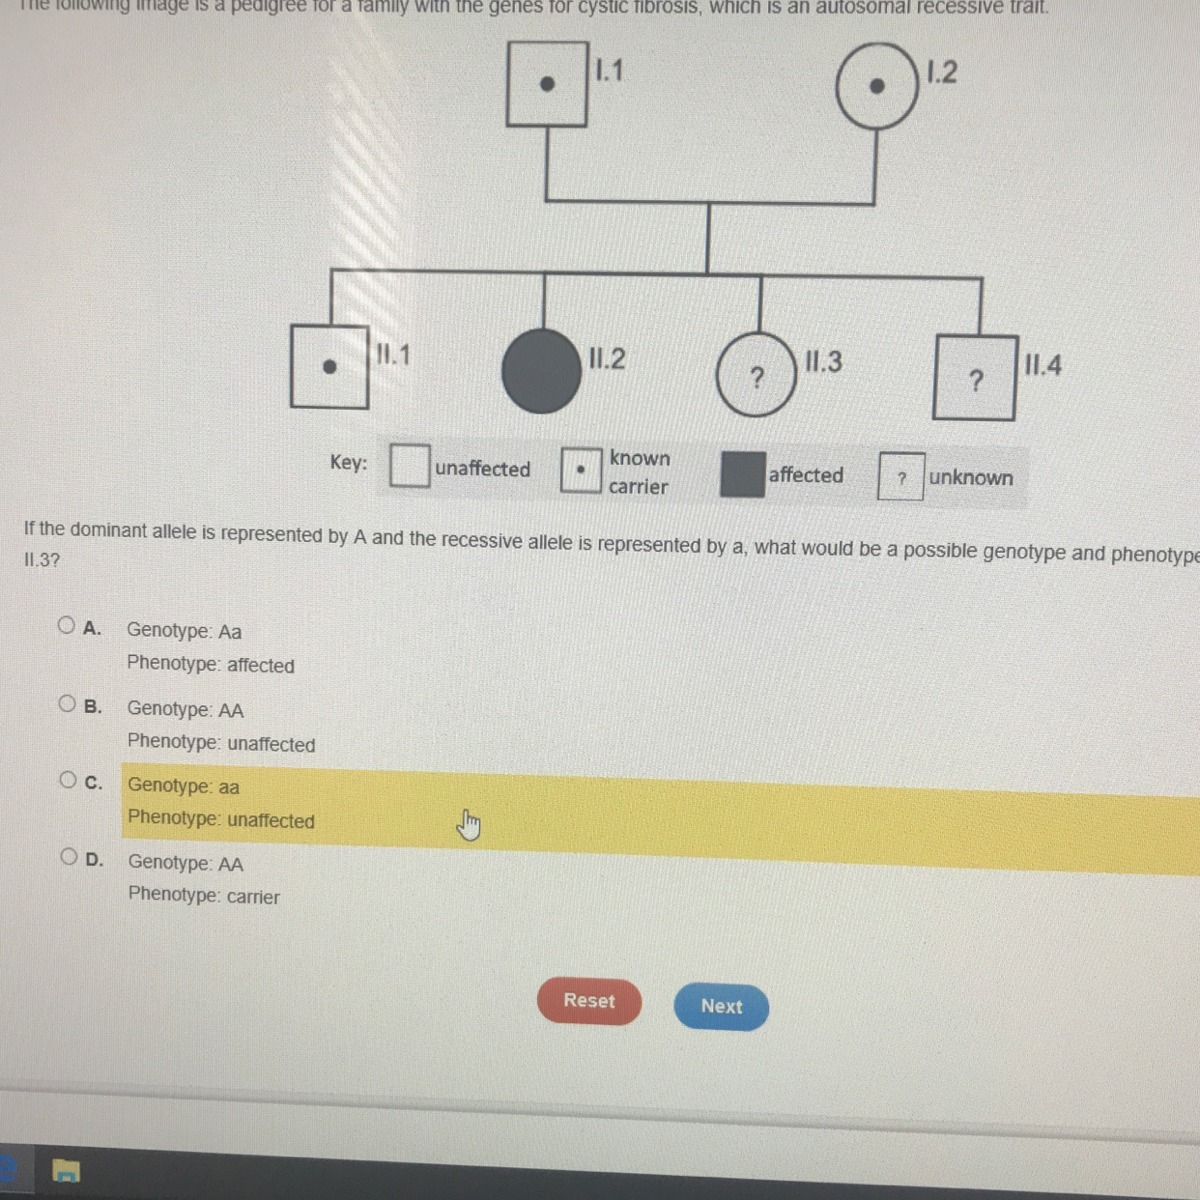 Help Me Please If The Dominant Allele Is Represented